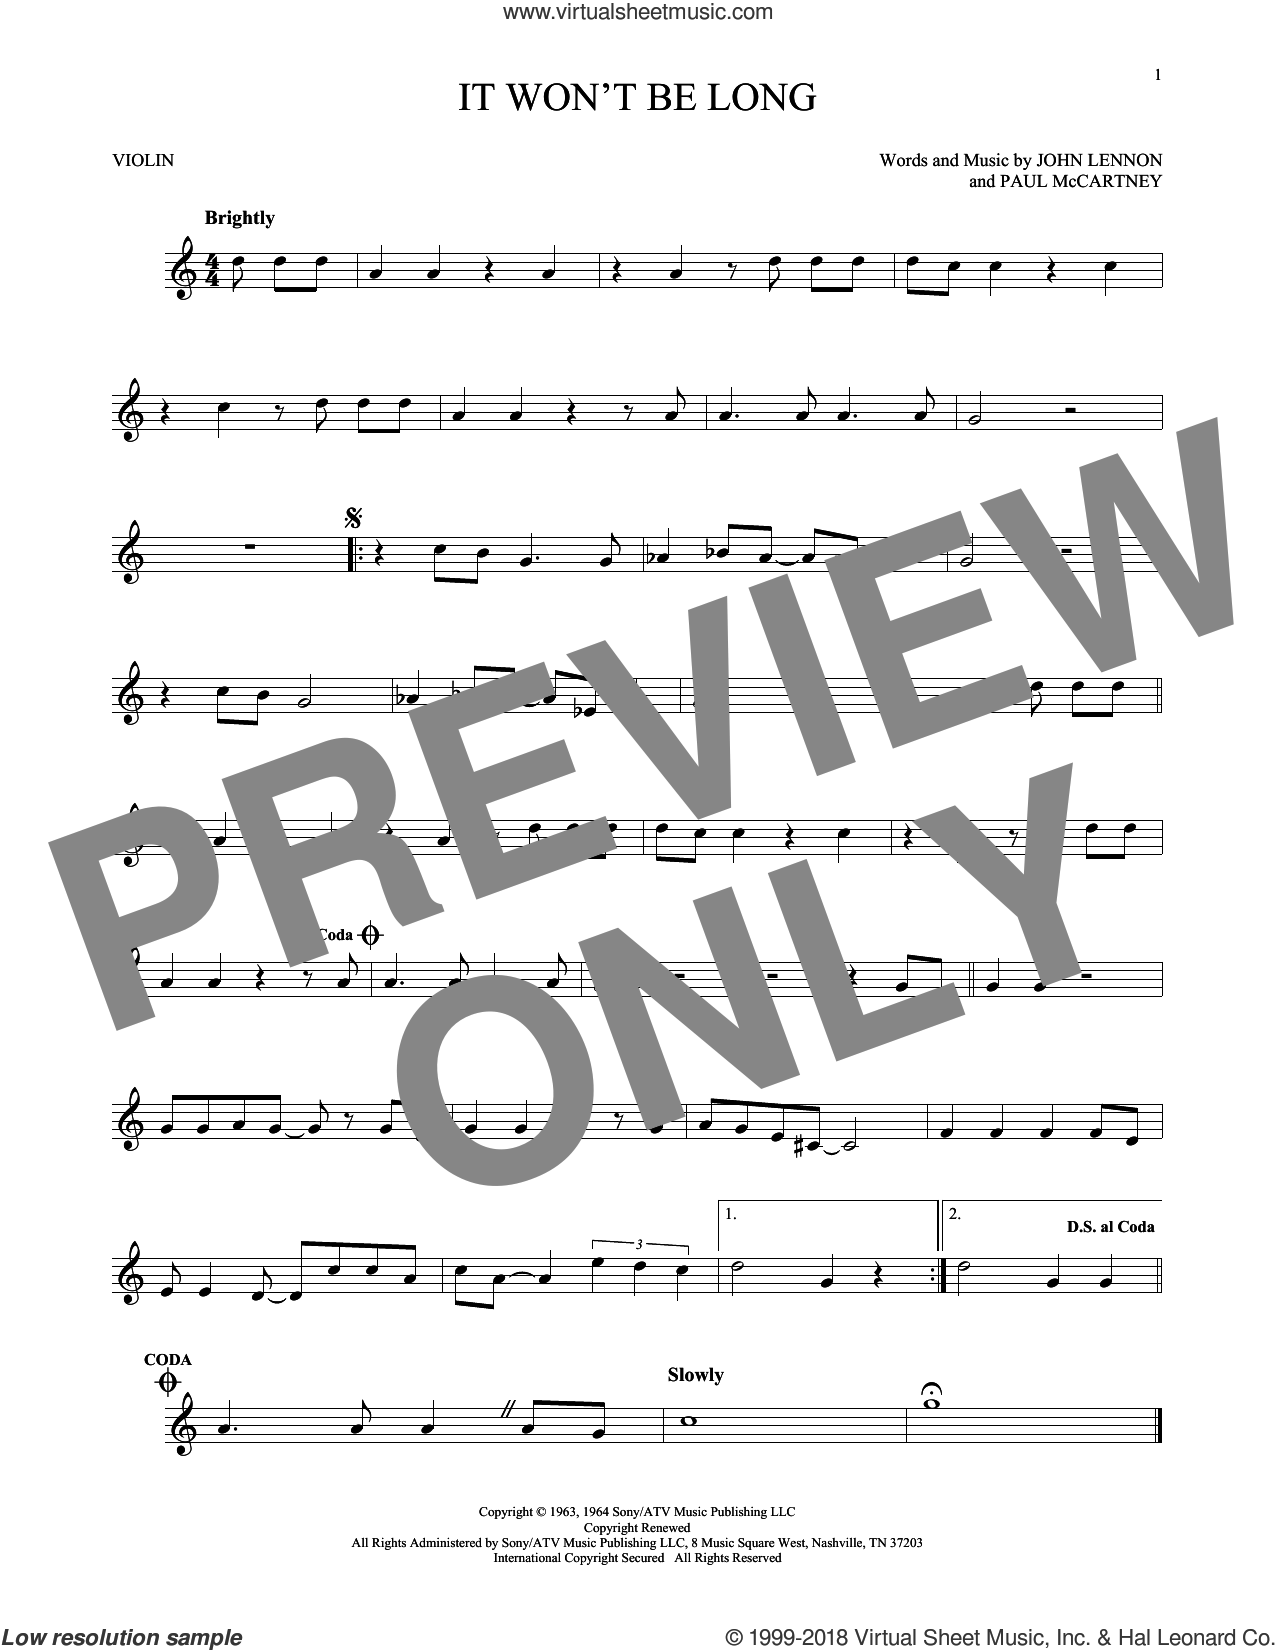 It Won't Be Long sheet music for violin solo by The Beatles, John Lennon and Paul McCartney, intermediate skill level